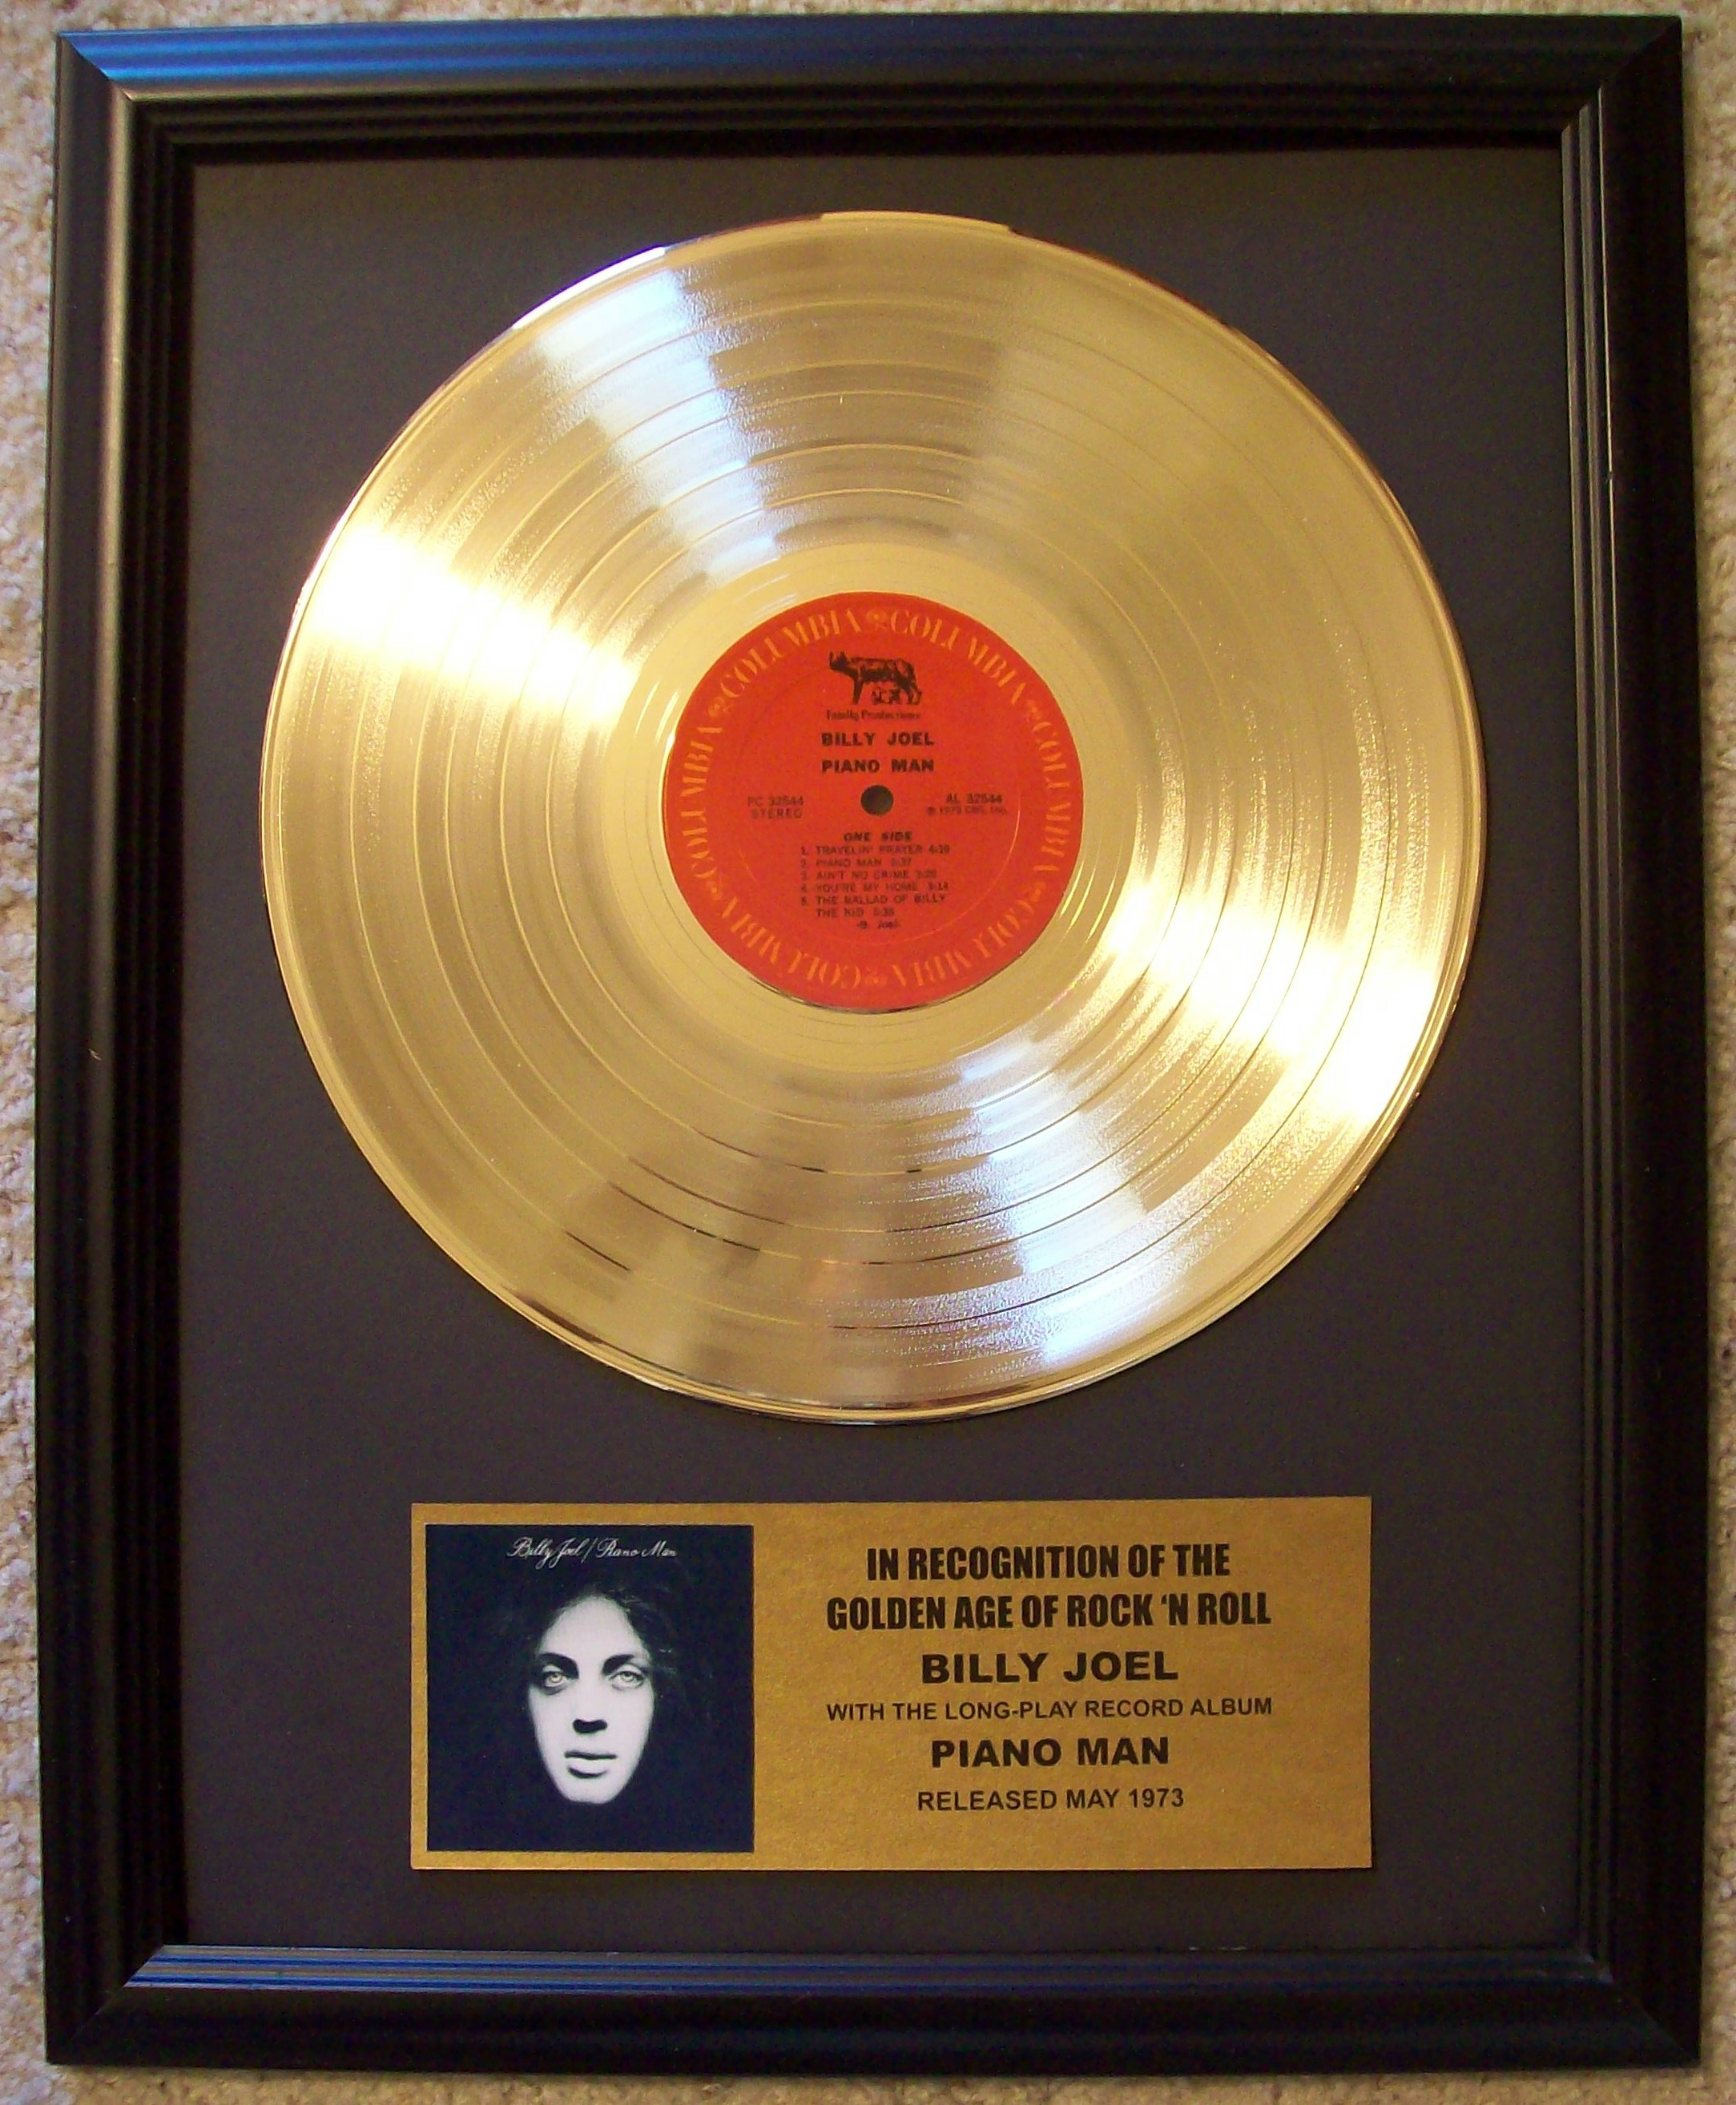 Image for Billy Joel Piano Man Gold Record Album